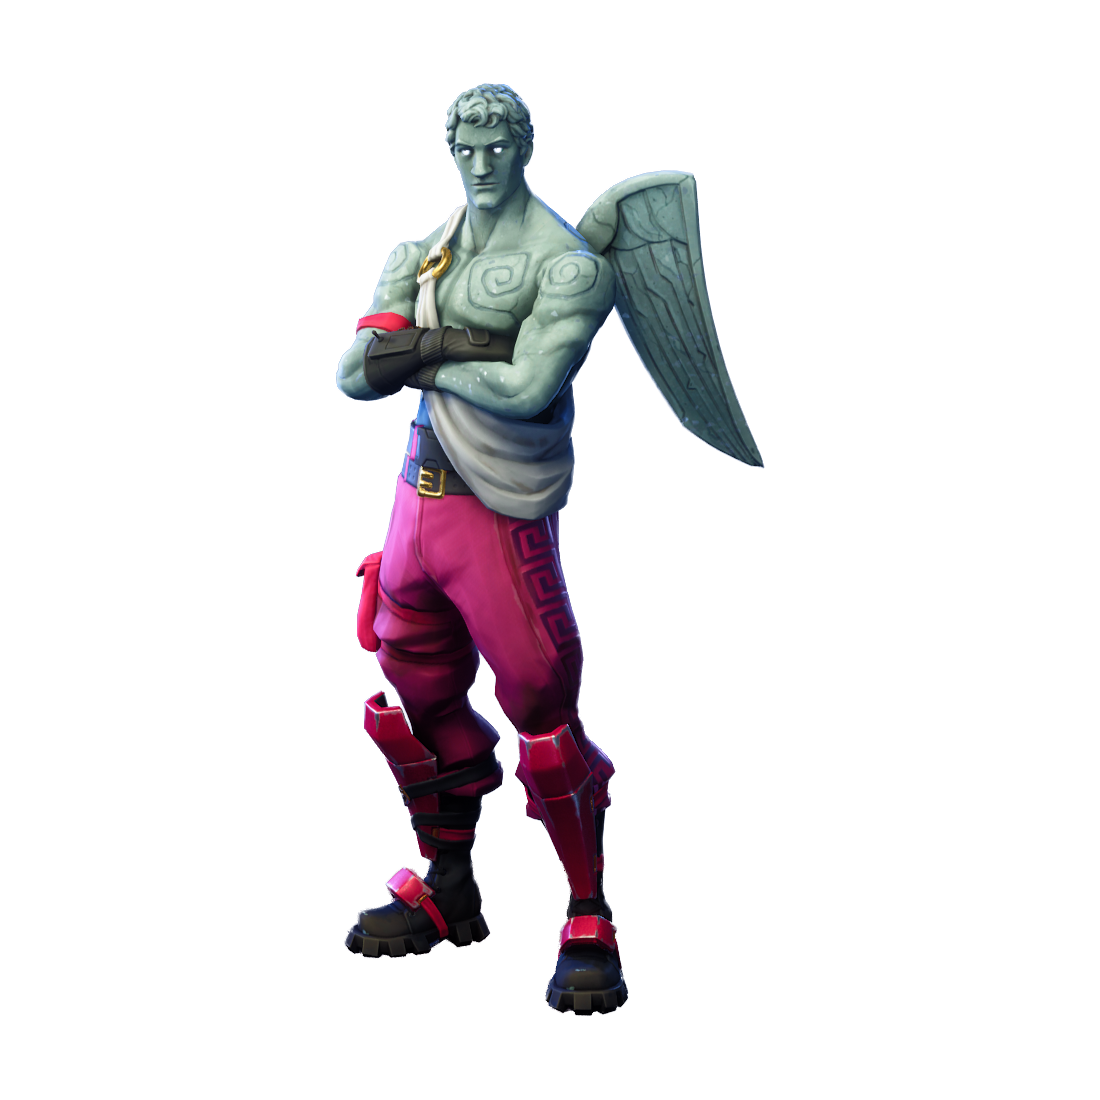 Fortnite character png. Fnbr co cosmetics